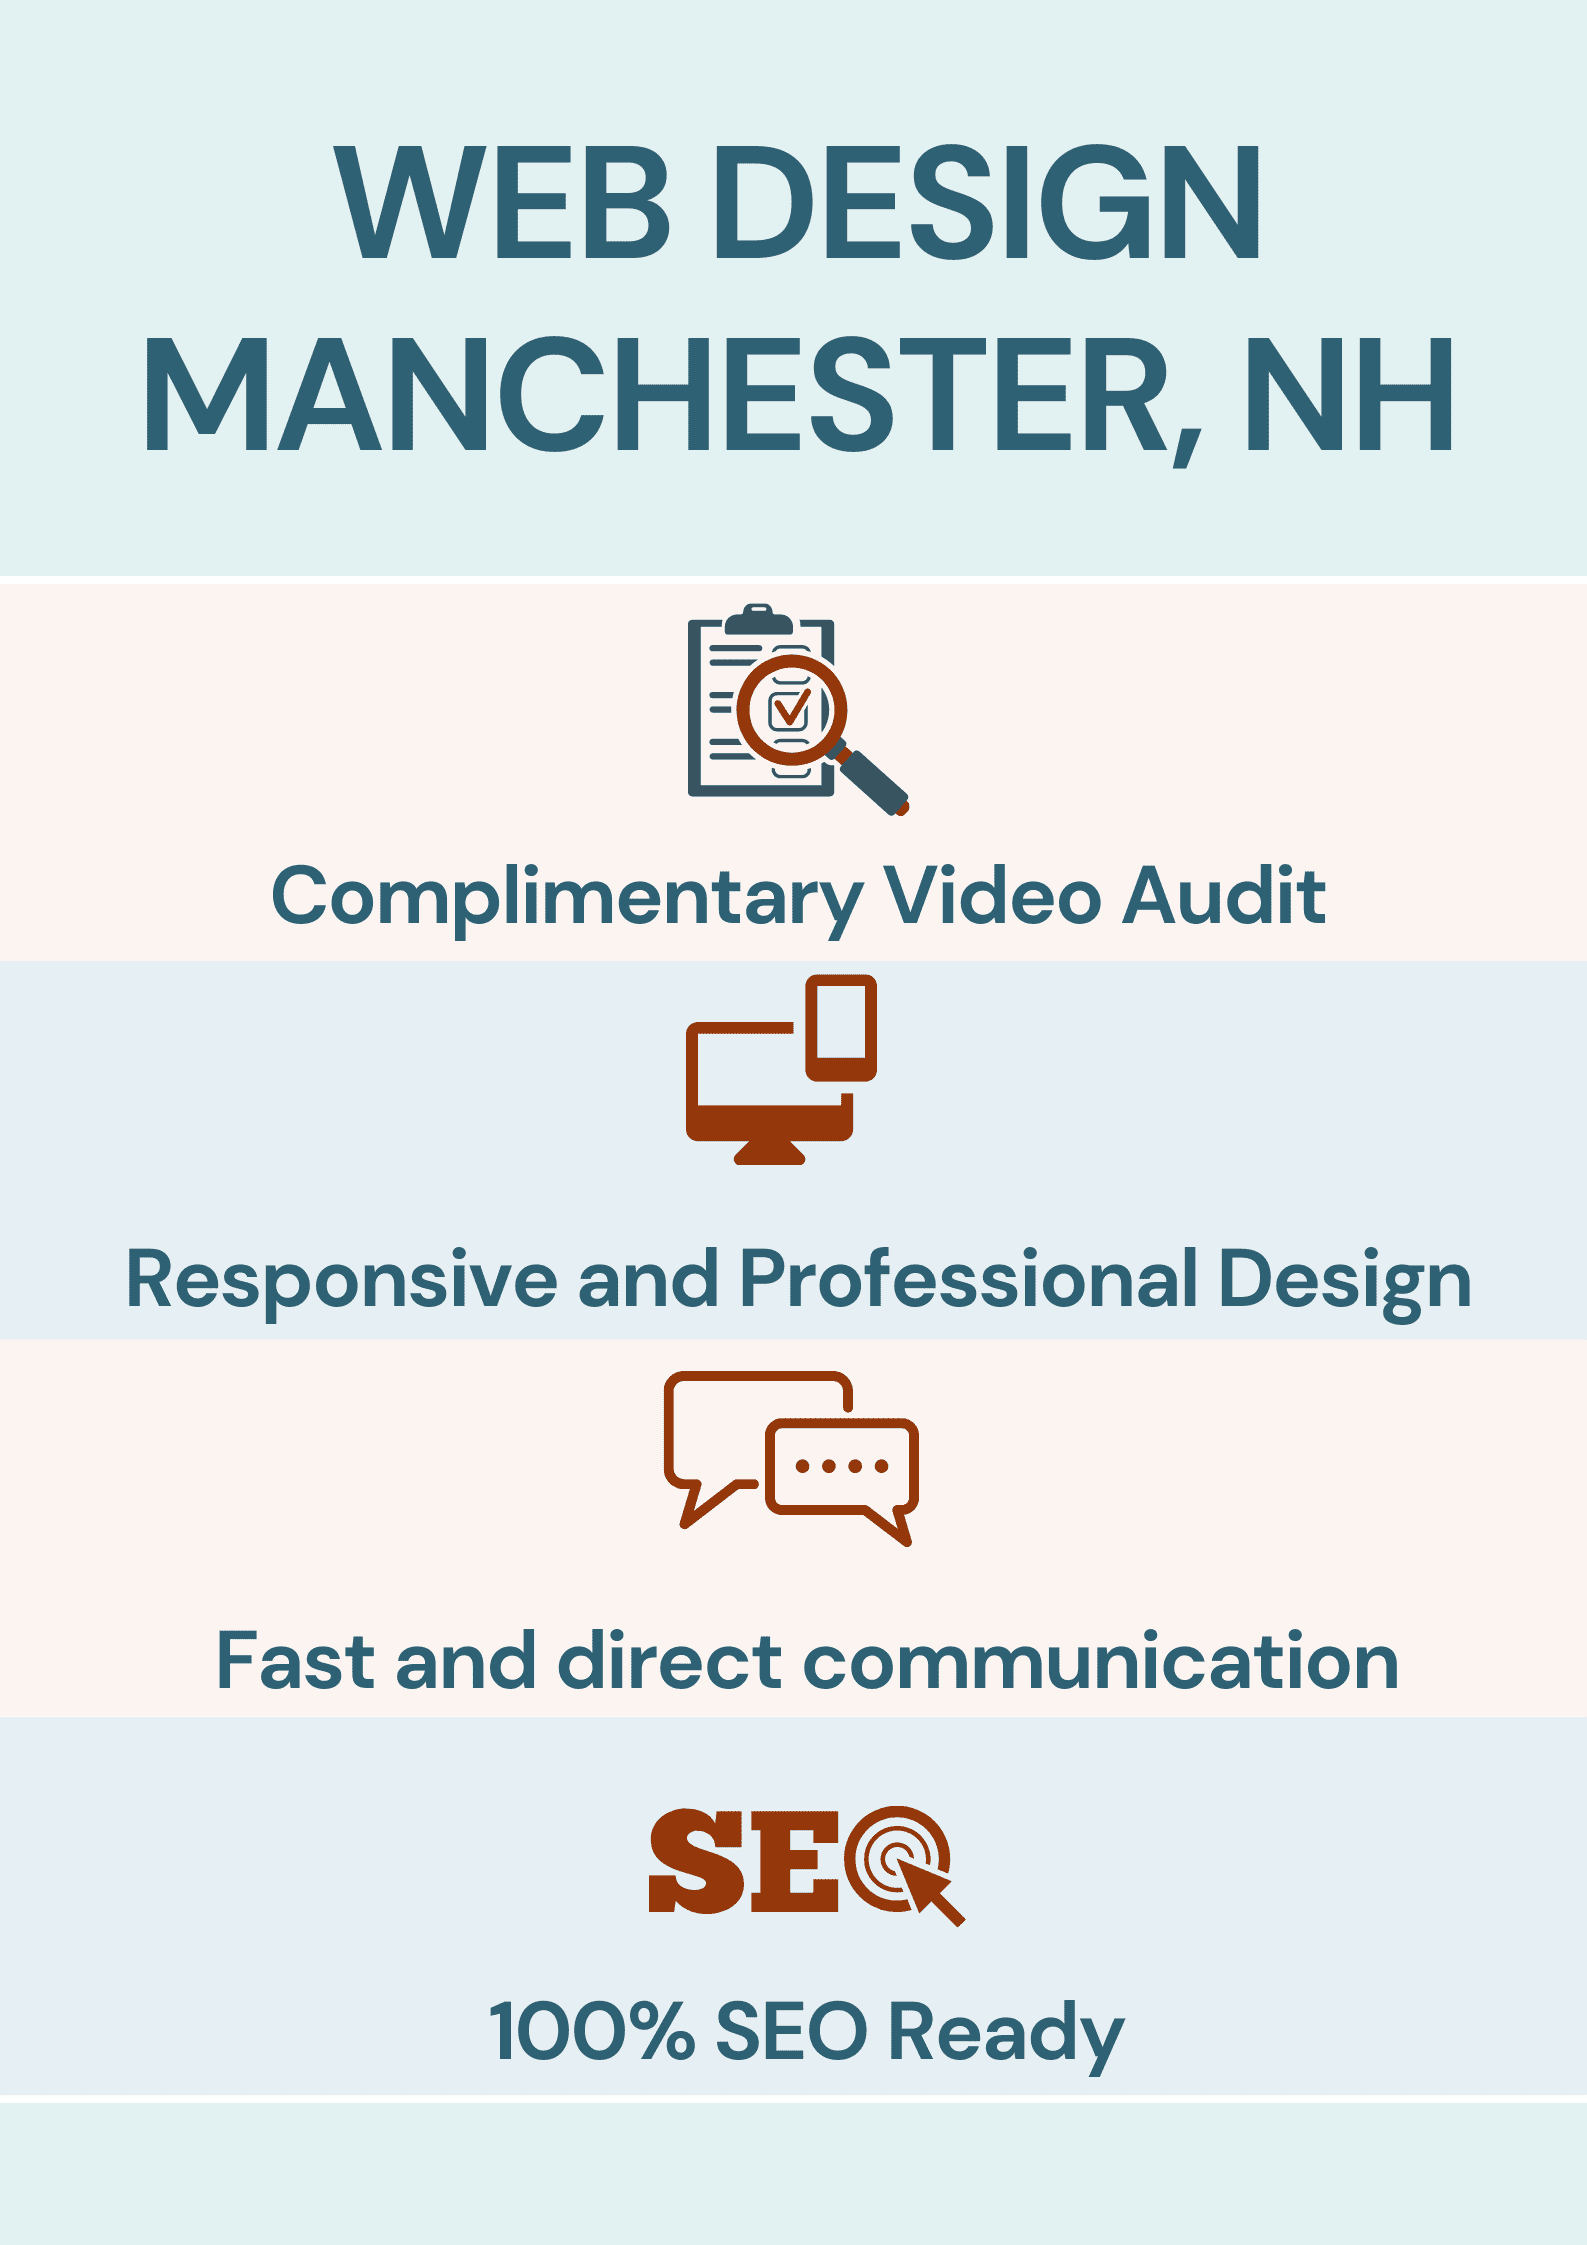 web design in manchester poster highlighting important features